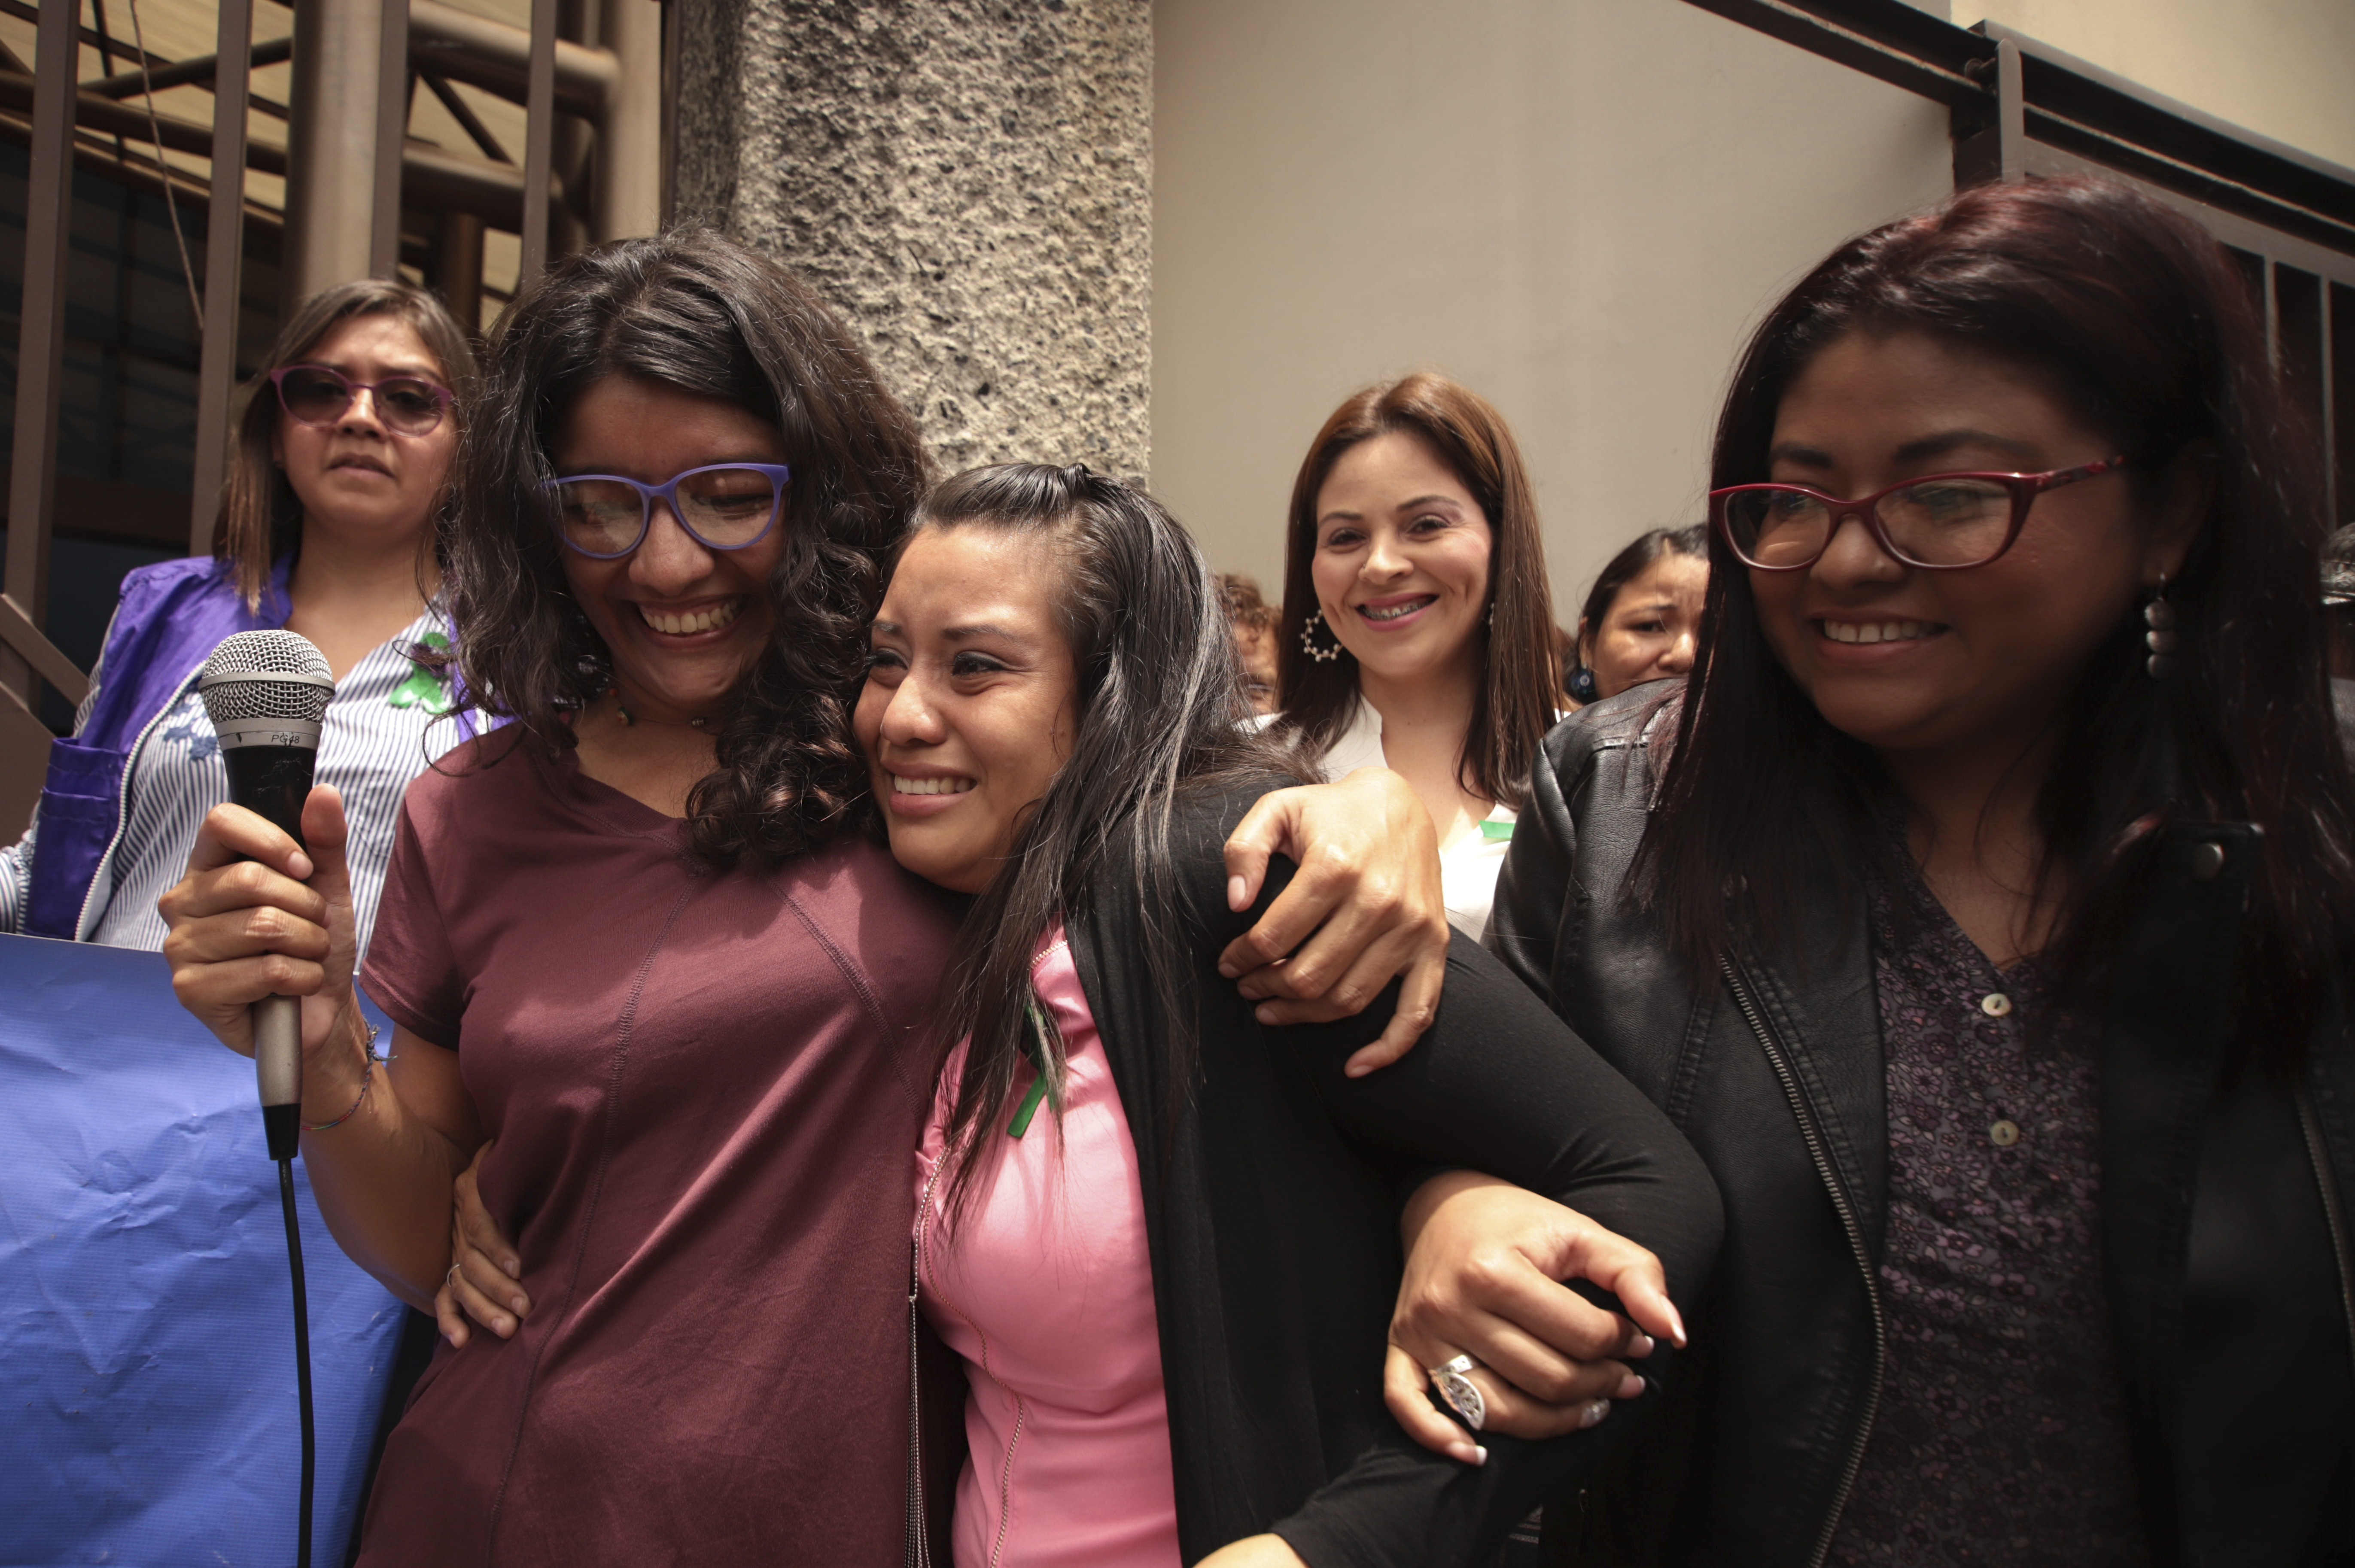 Salvadoran Woman Who Lost Her Pregnancy Is Acquitted Of Homicide In Retrial